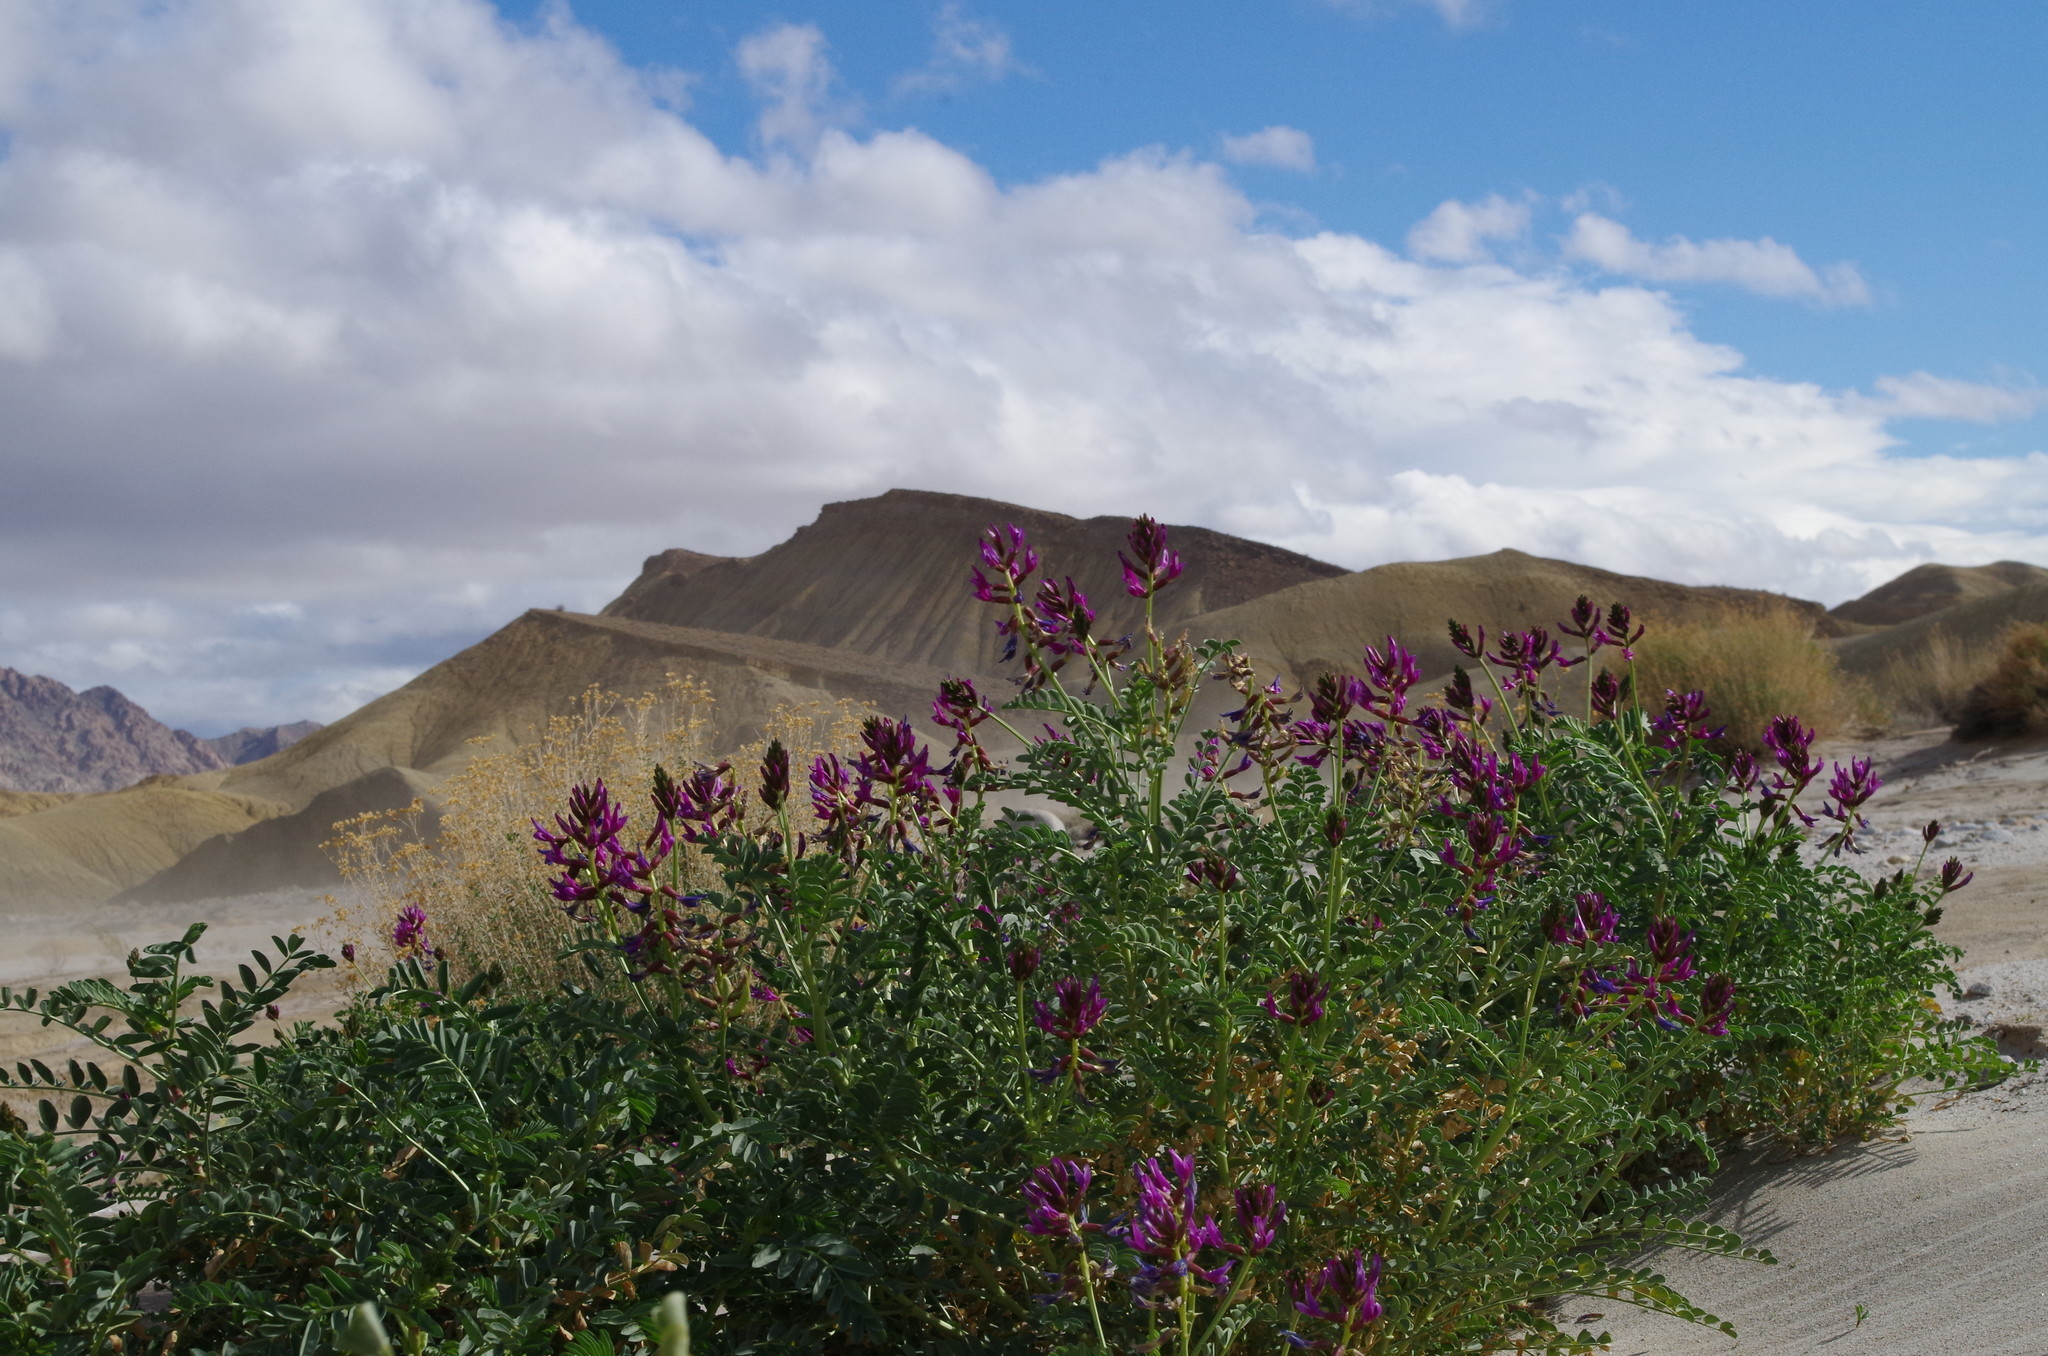 A plant called milk vetch is blooming this wildflower season in the Fish Creek area of Anza-Borrego Desert State Park.